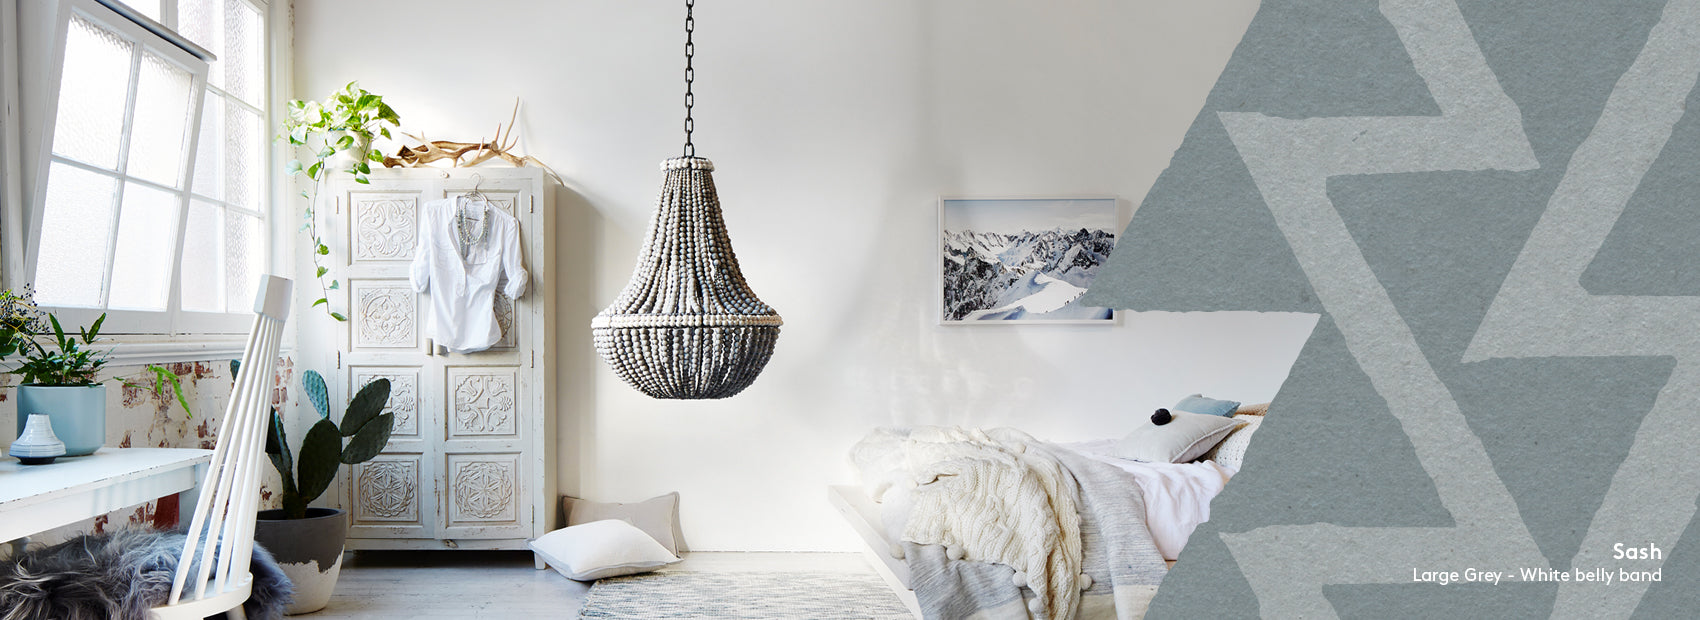 coastal interior design modern chandelier